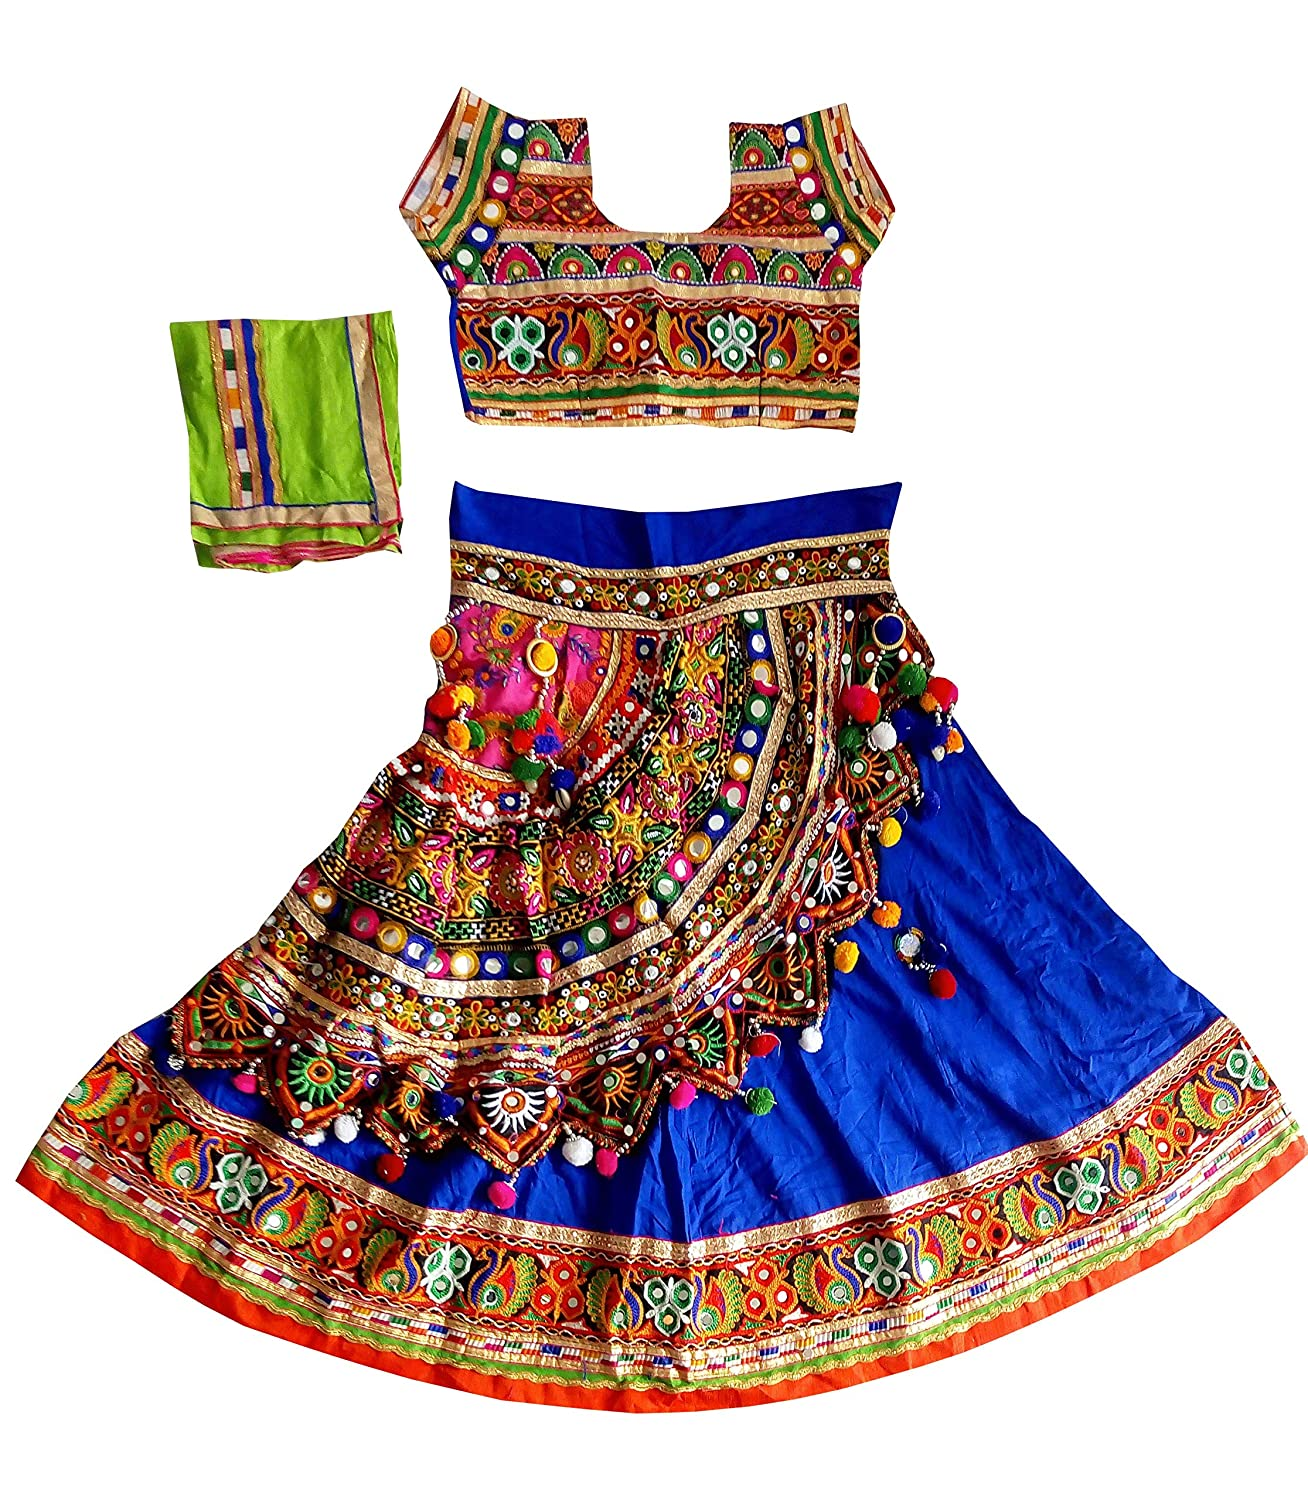 Buy Nandi Women Cotton Indian Kids Heavy Gujarati Embroidered Work Chaniya Choli For Baby Girl Blue 28 At Amazon In,Grand Designs Season 17 Episode 5